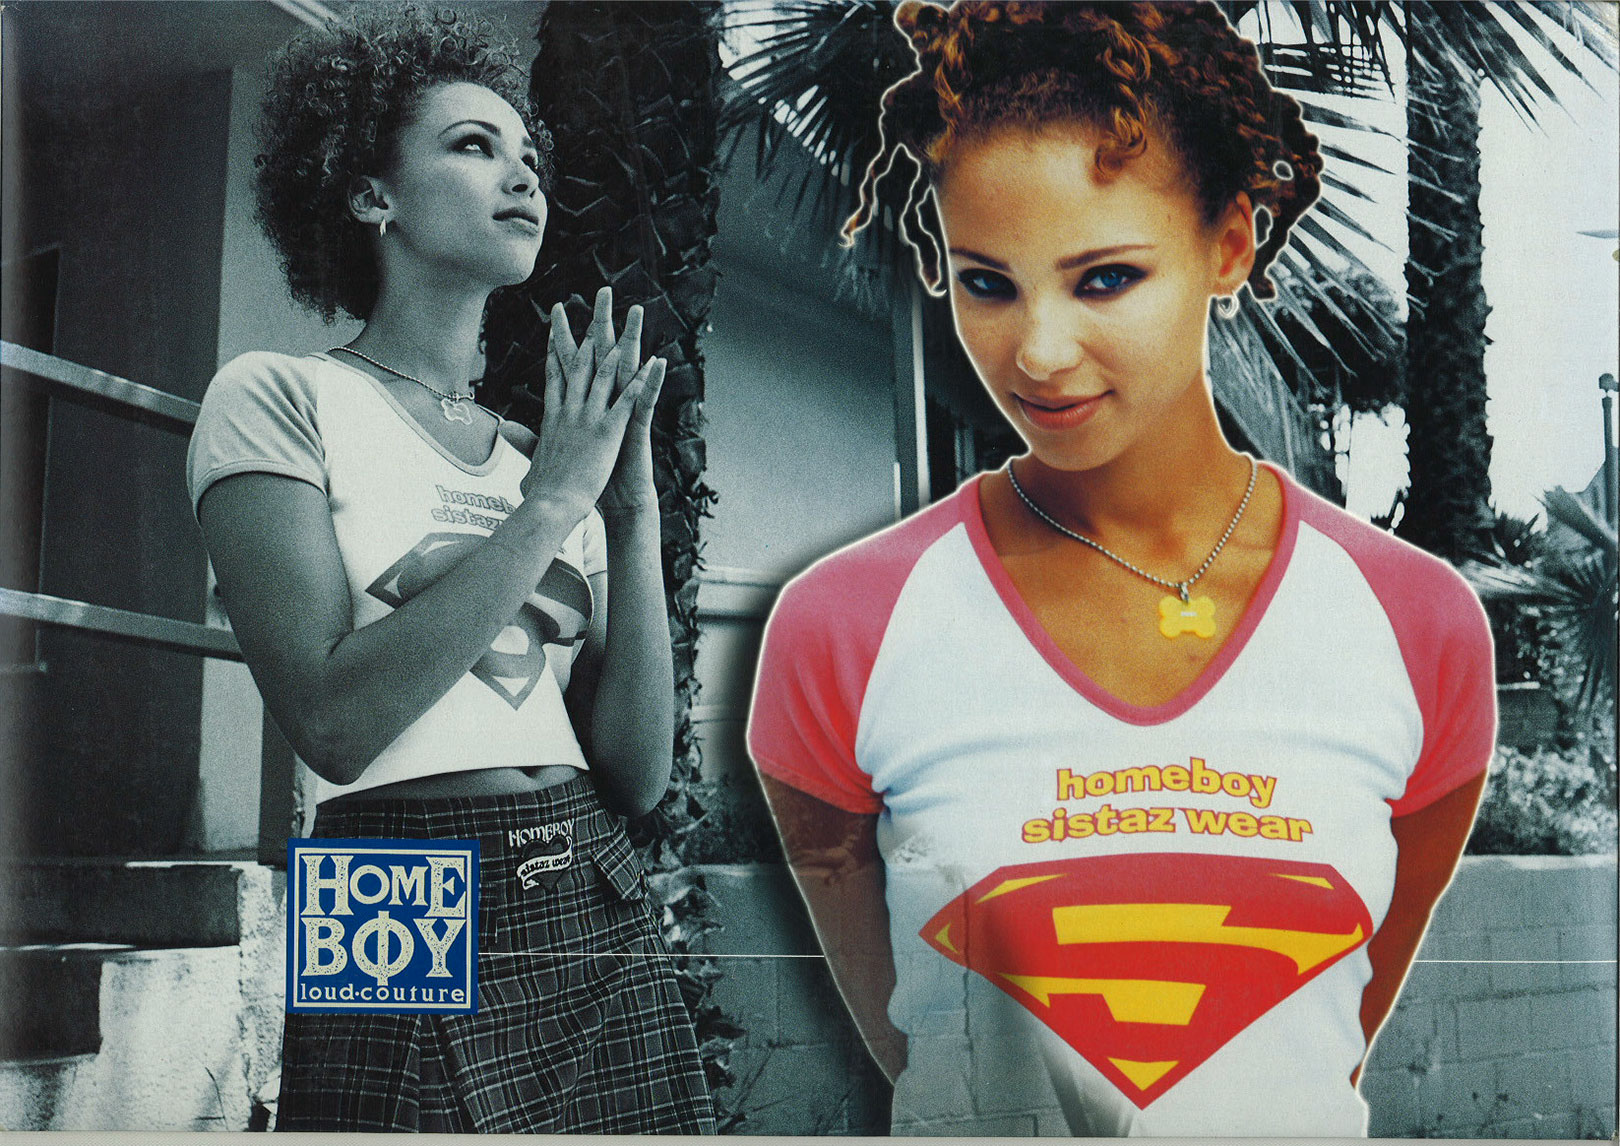 1996 Homeboy Sistazwear